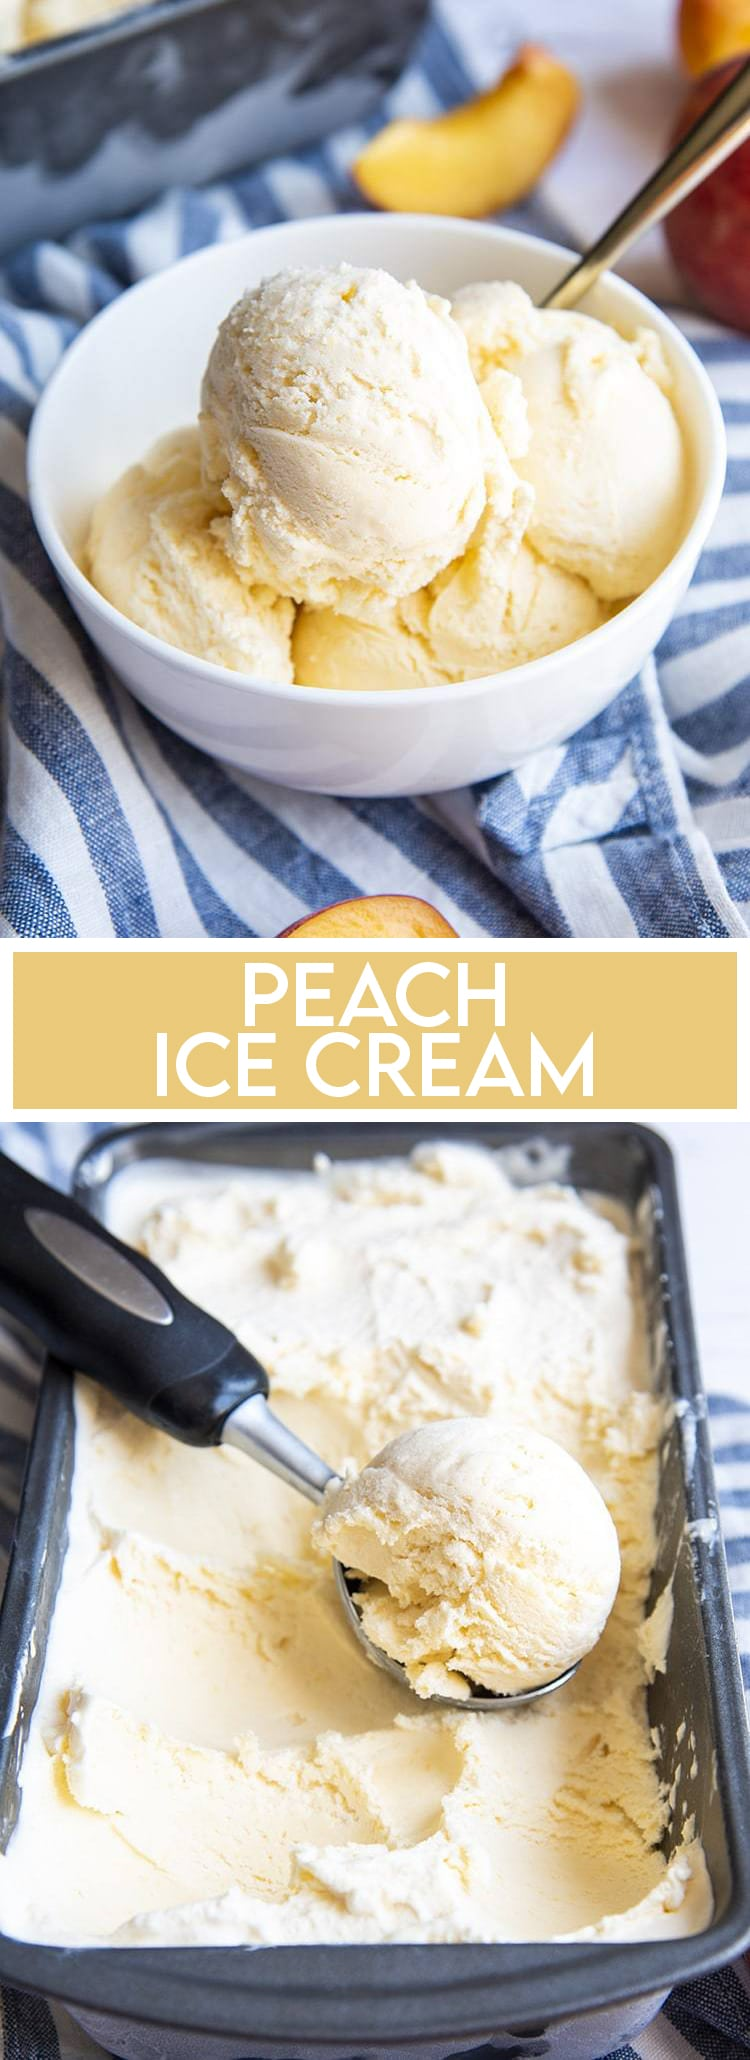 A collage of two photos of peach ice cream. The first photo is the ice cream in a white bowl. The second is a pan of peach ice cream with a scoop taken out.